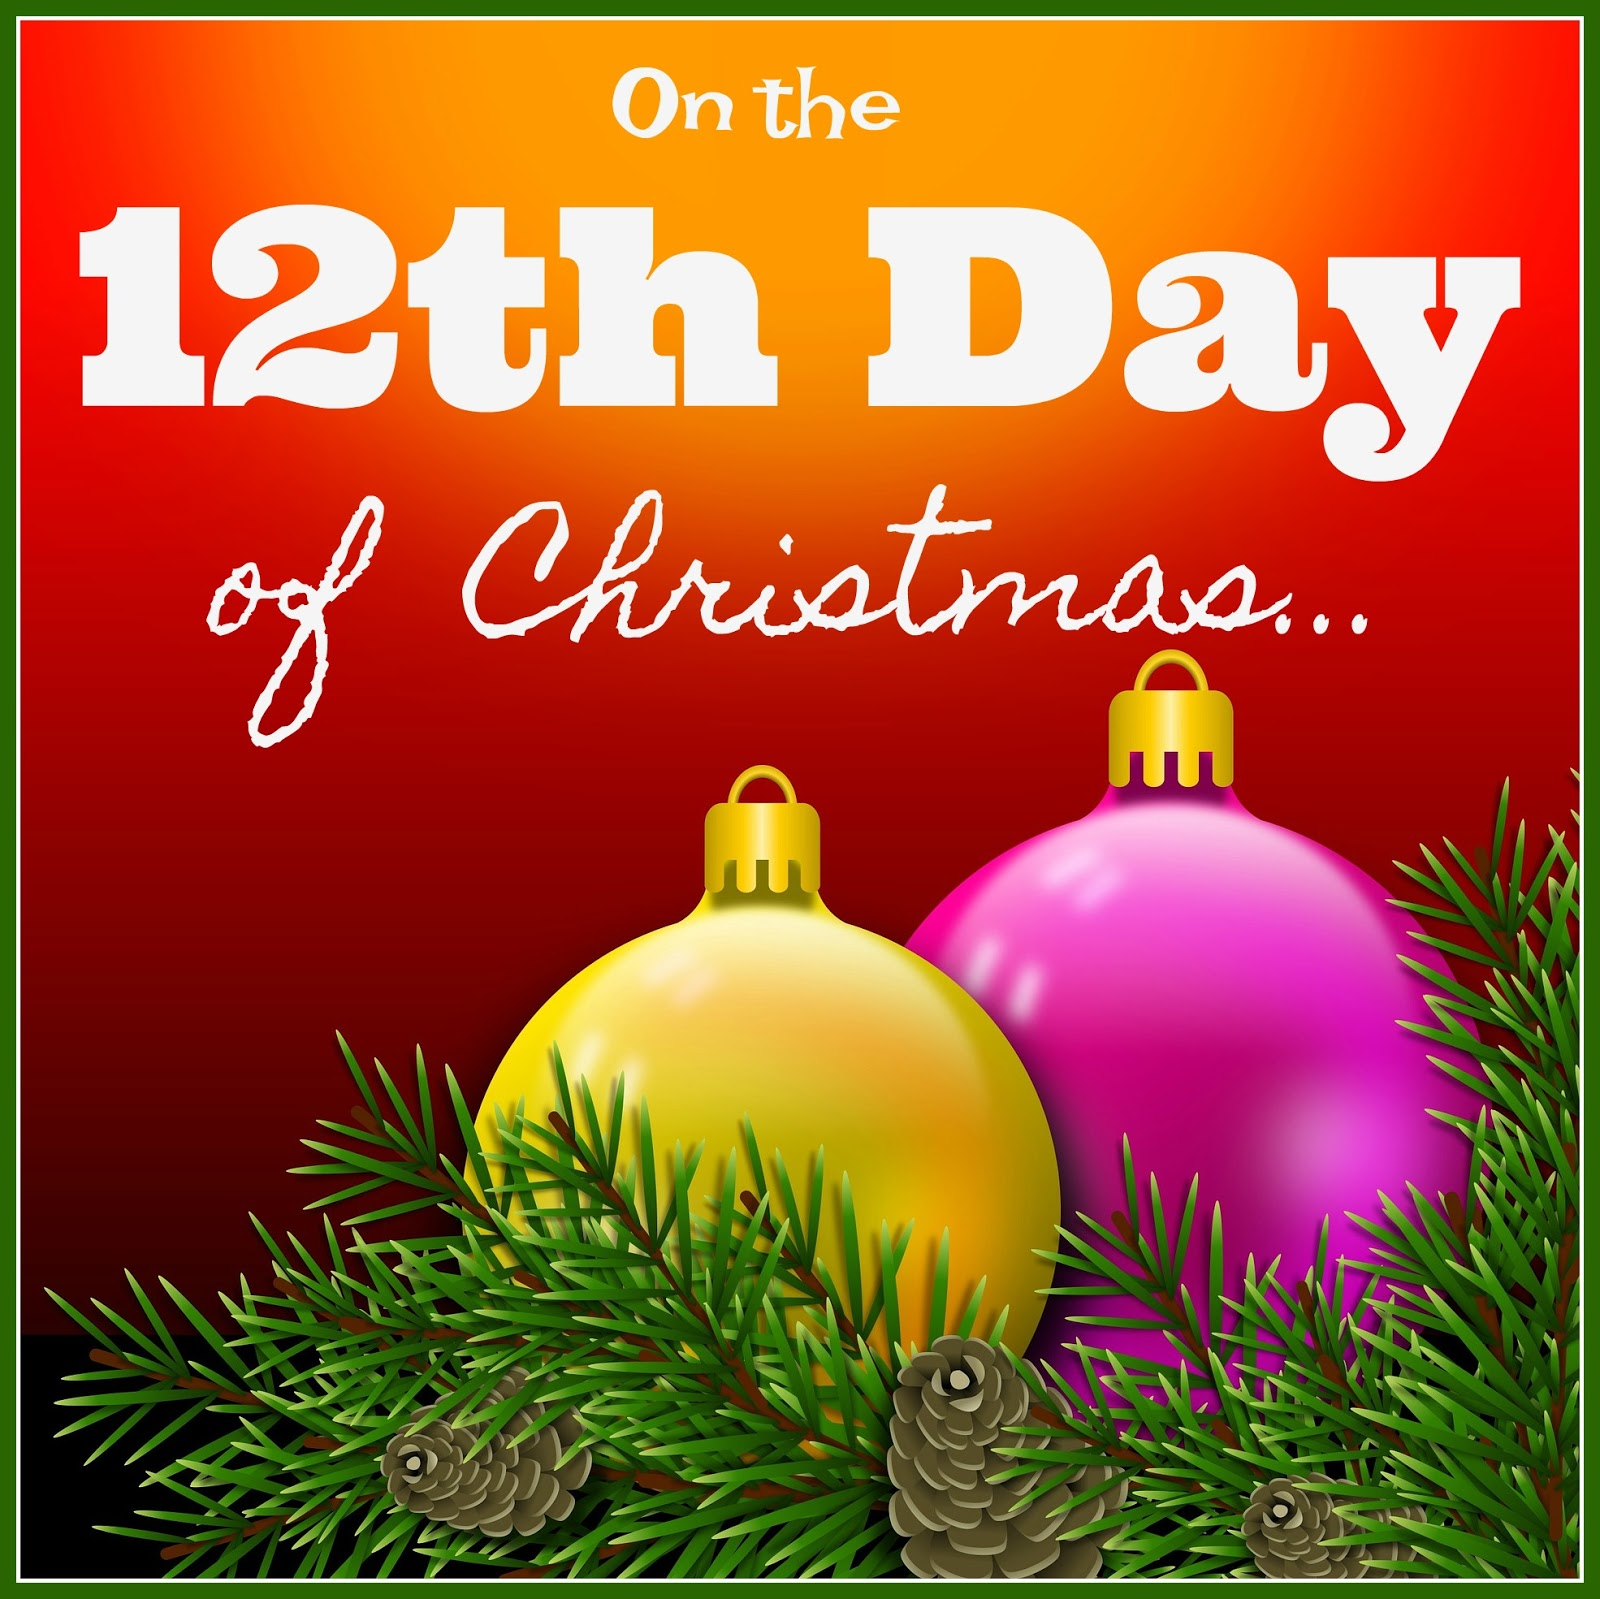 on the 12th day of christmas - On The 12th Day Of Christmas